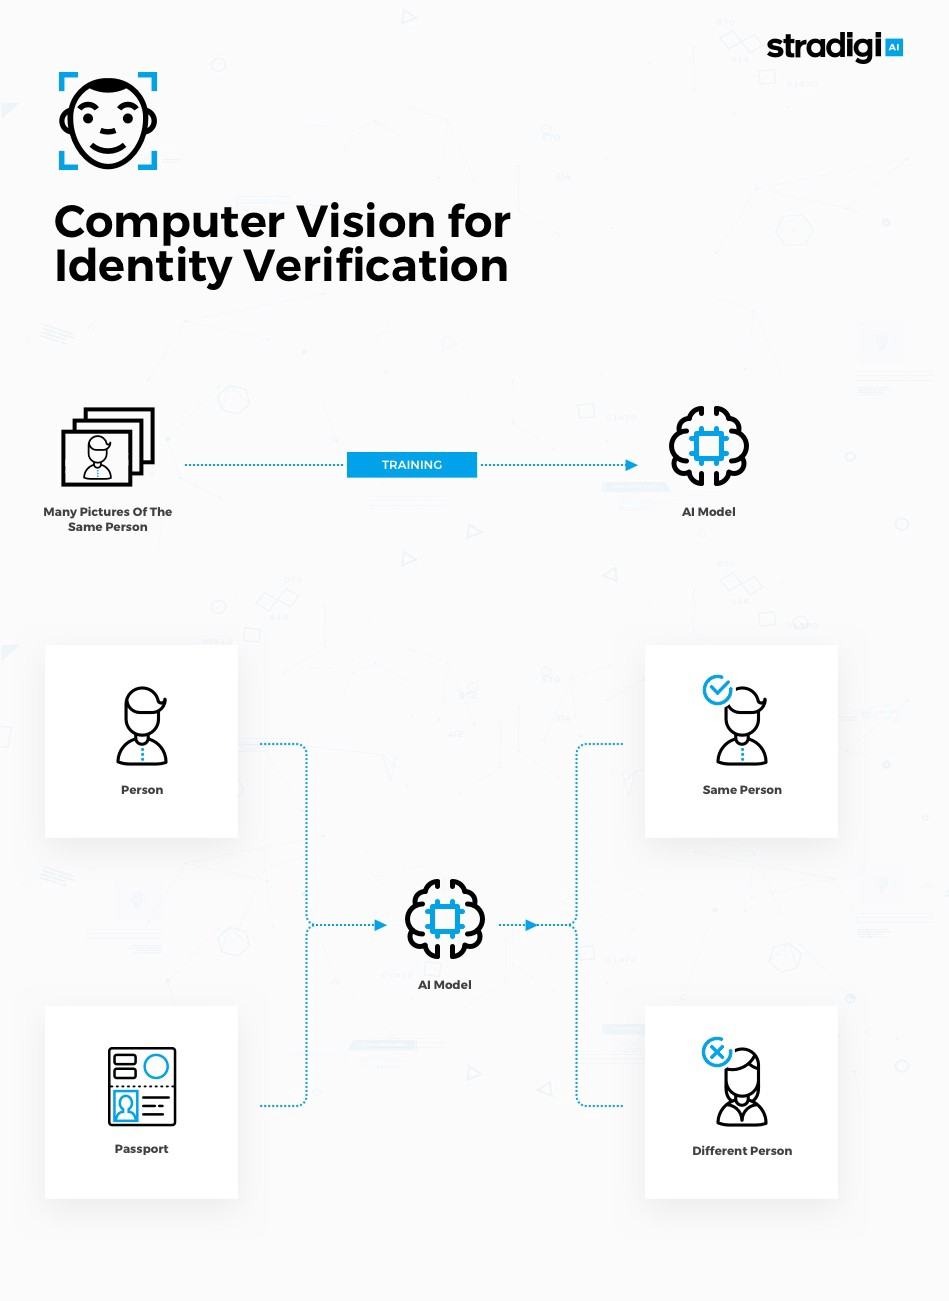 Computer Vision for Identity Verification